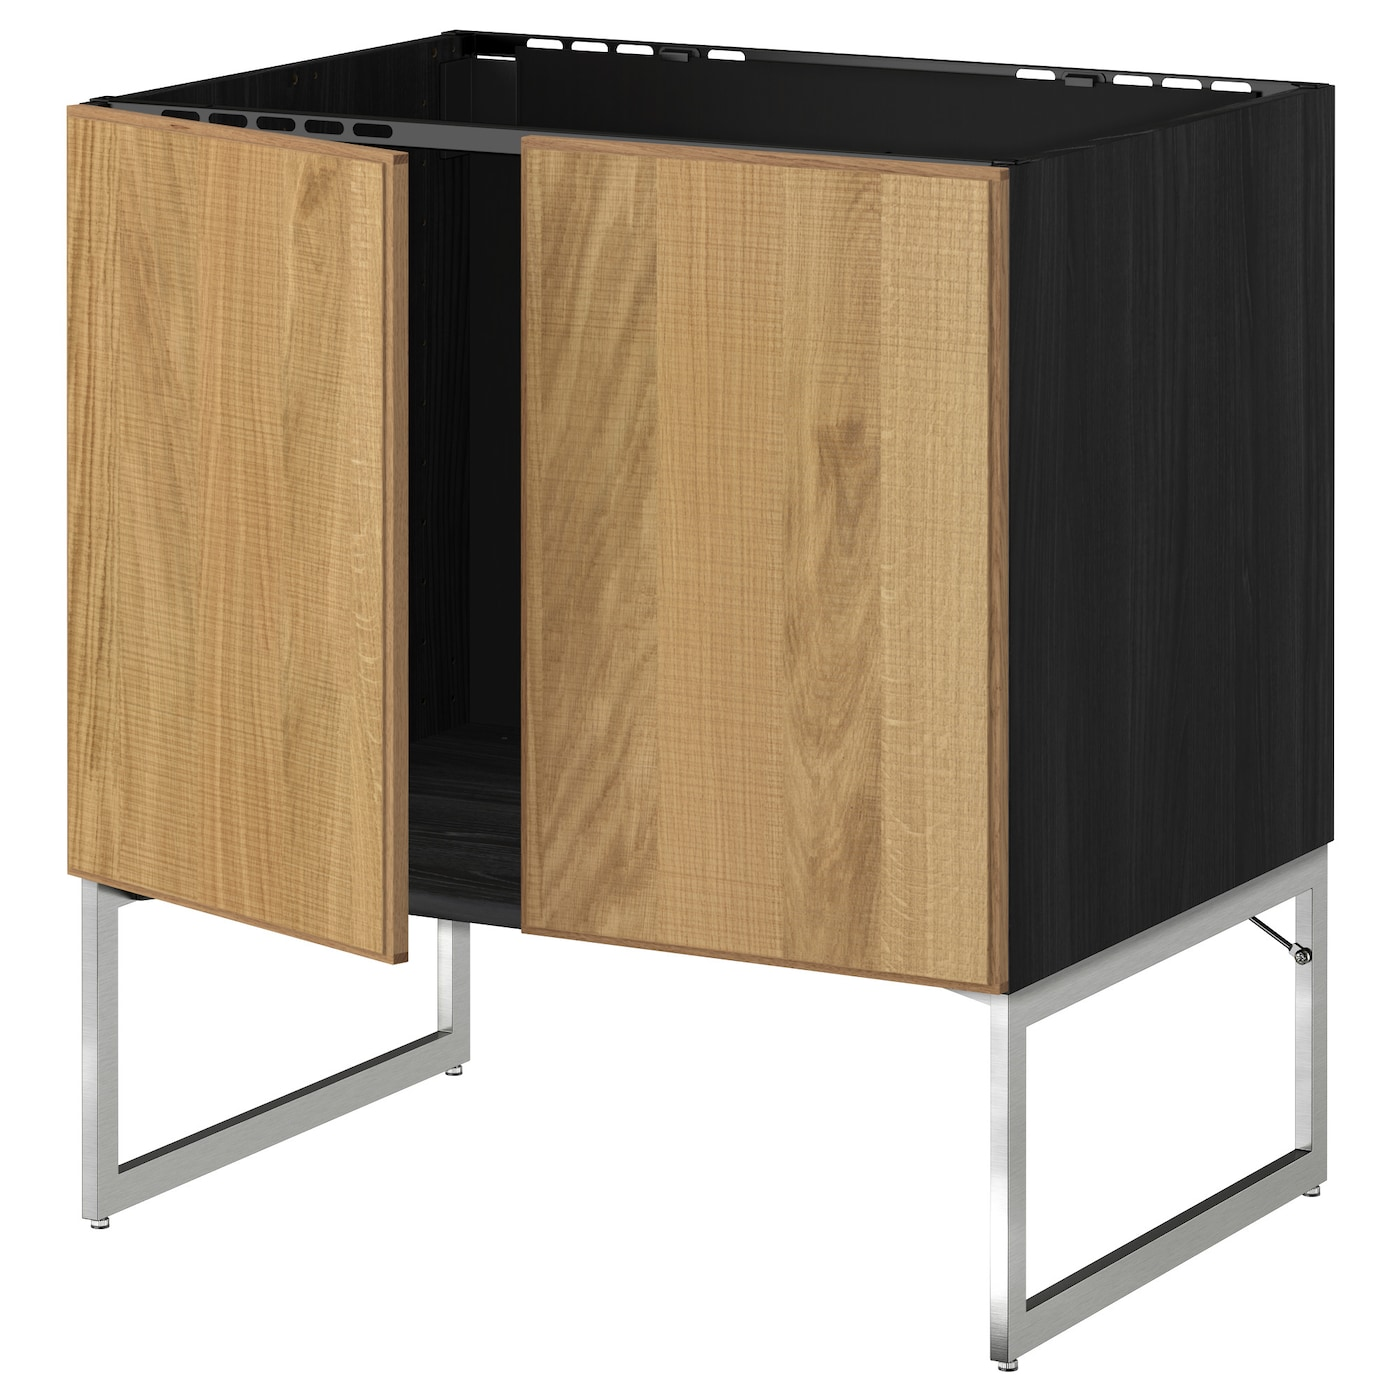 Metod base cabinet for sink 2 doors black hyttan oak - Ikea cabinet doors on existing cabinets ...